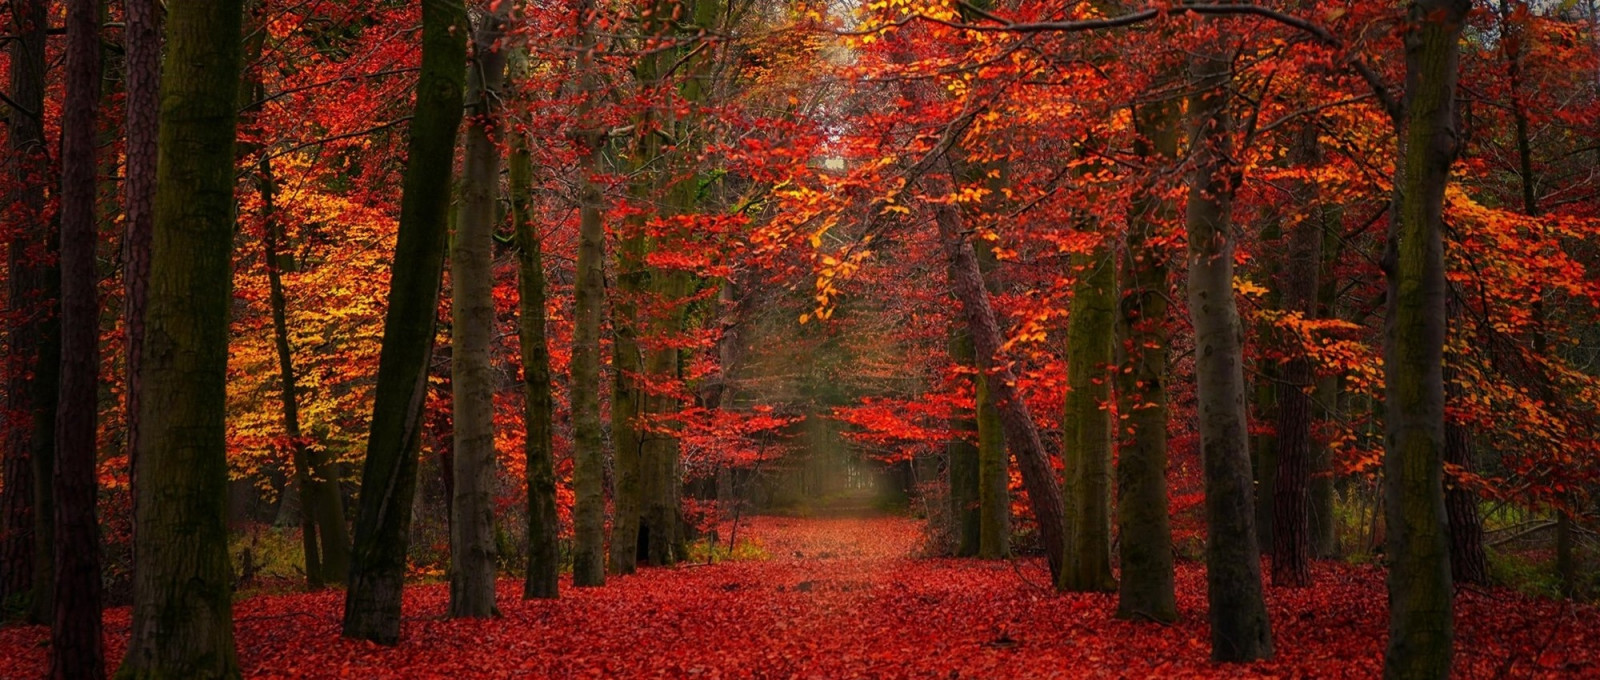 Fall Fairys Wallpapers Wallpaper Sunlight Trees Landscape Fall Leaves